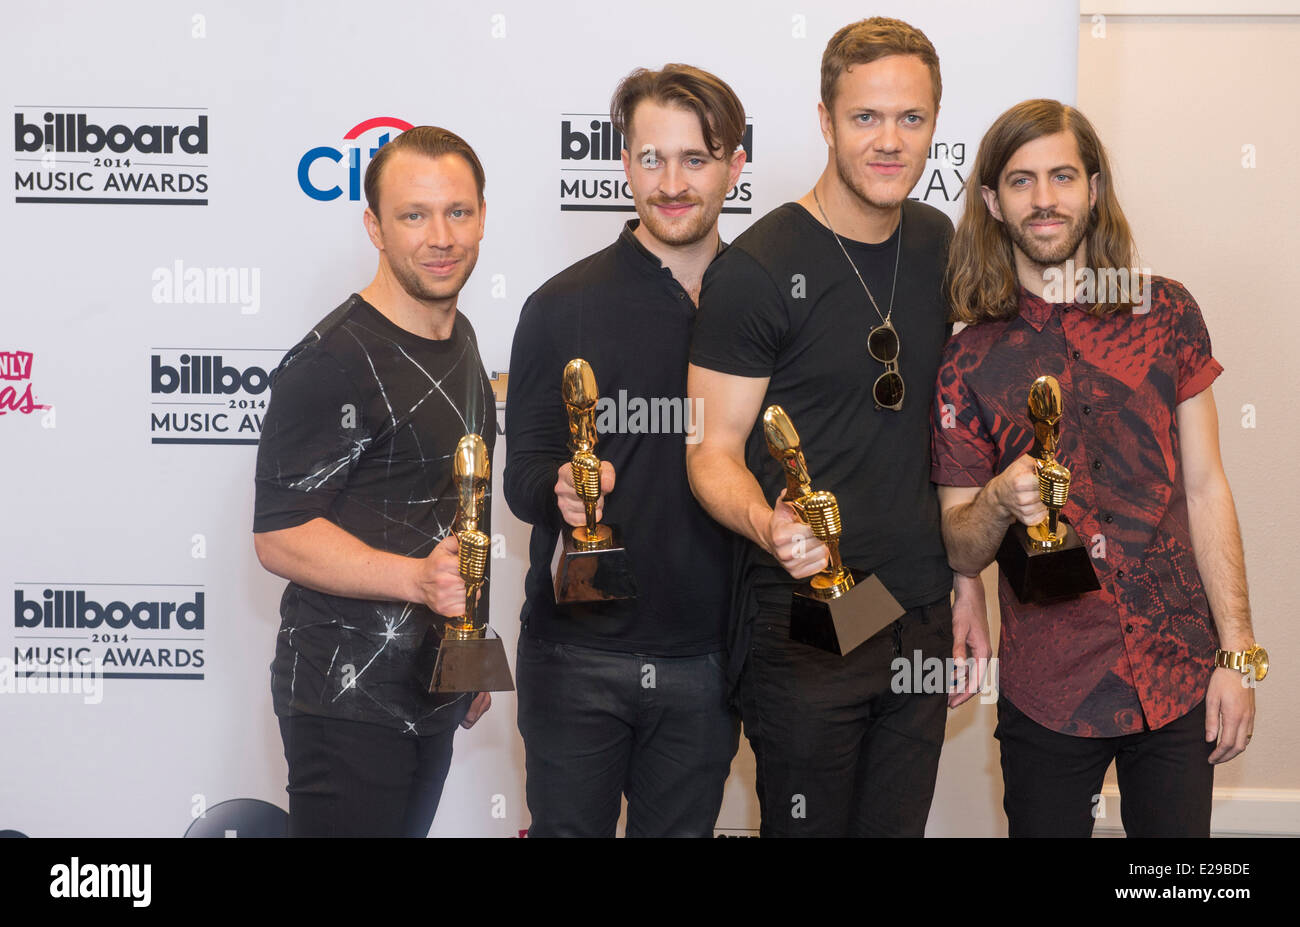 Members of the alternative rock band Imagine Dragons attend the 2014 Billboard Music Awards at the MGM Grand Garden - Stock Image